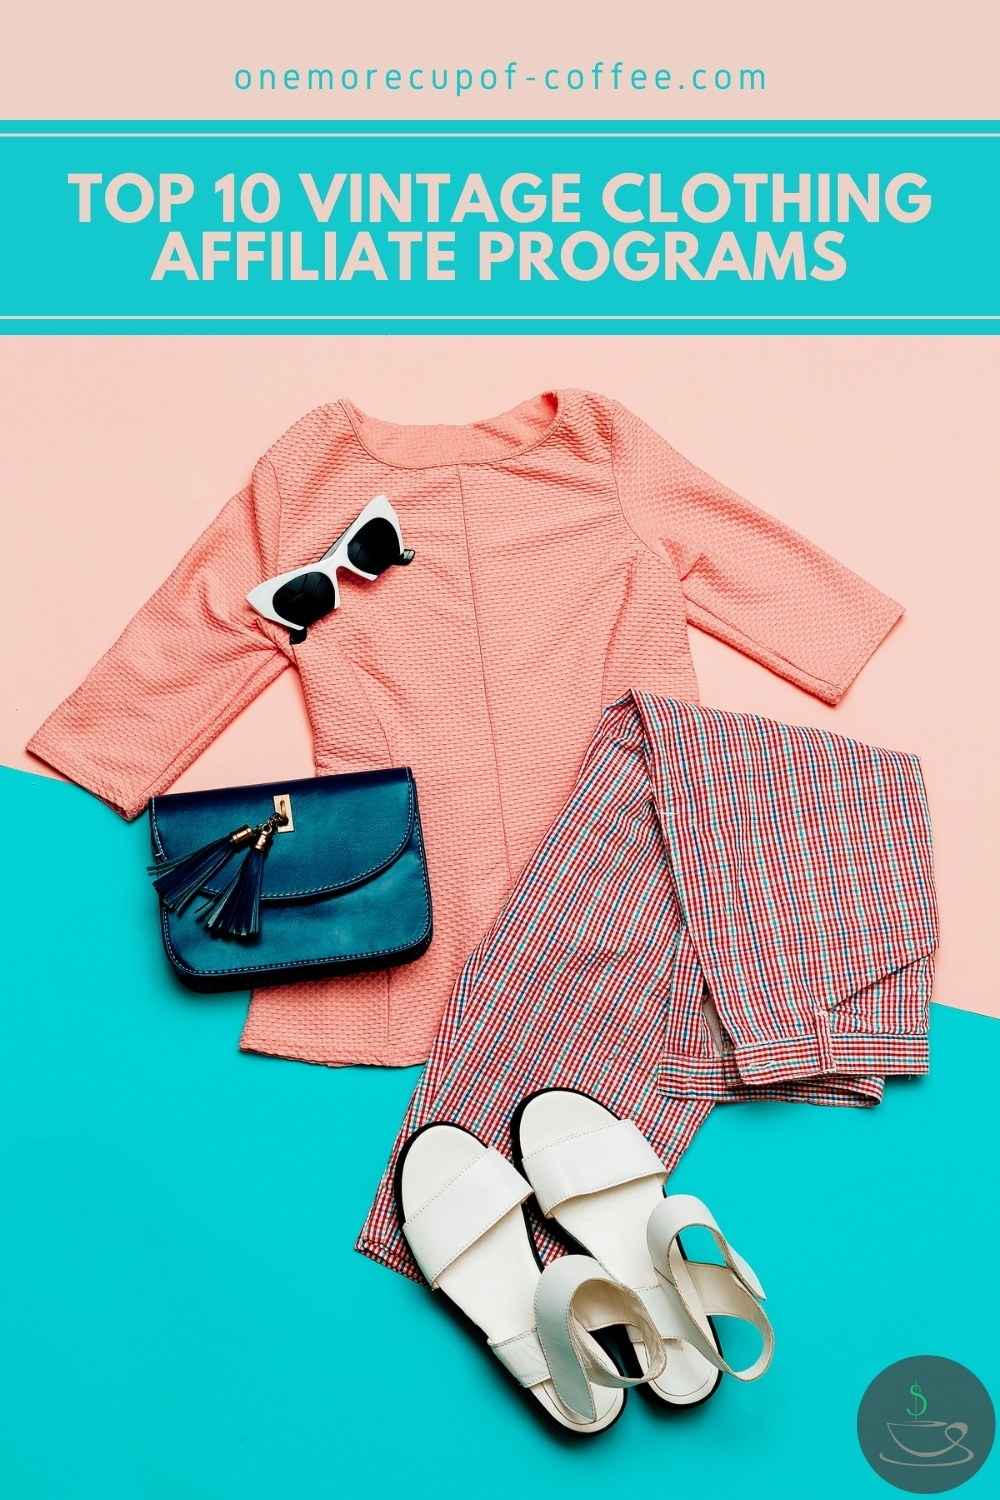 """top view image of vintage outfits - peach tops, plaid pants, sandals, black bag, and sunglasses, all laid out in a peach-blue background; with text overlay """"Top 10 Vintage Clothing Affiliate Programs"""""""